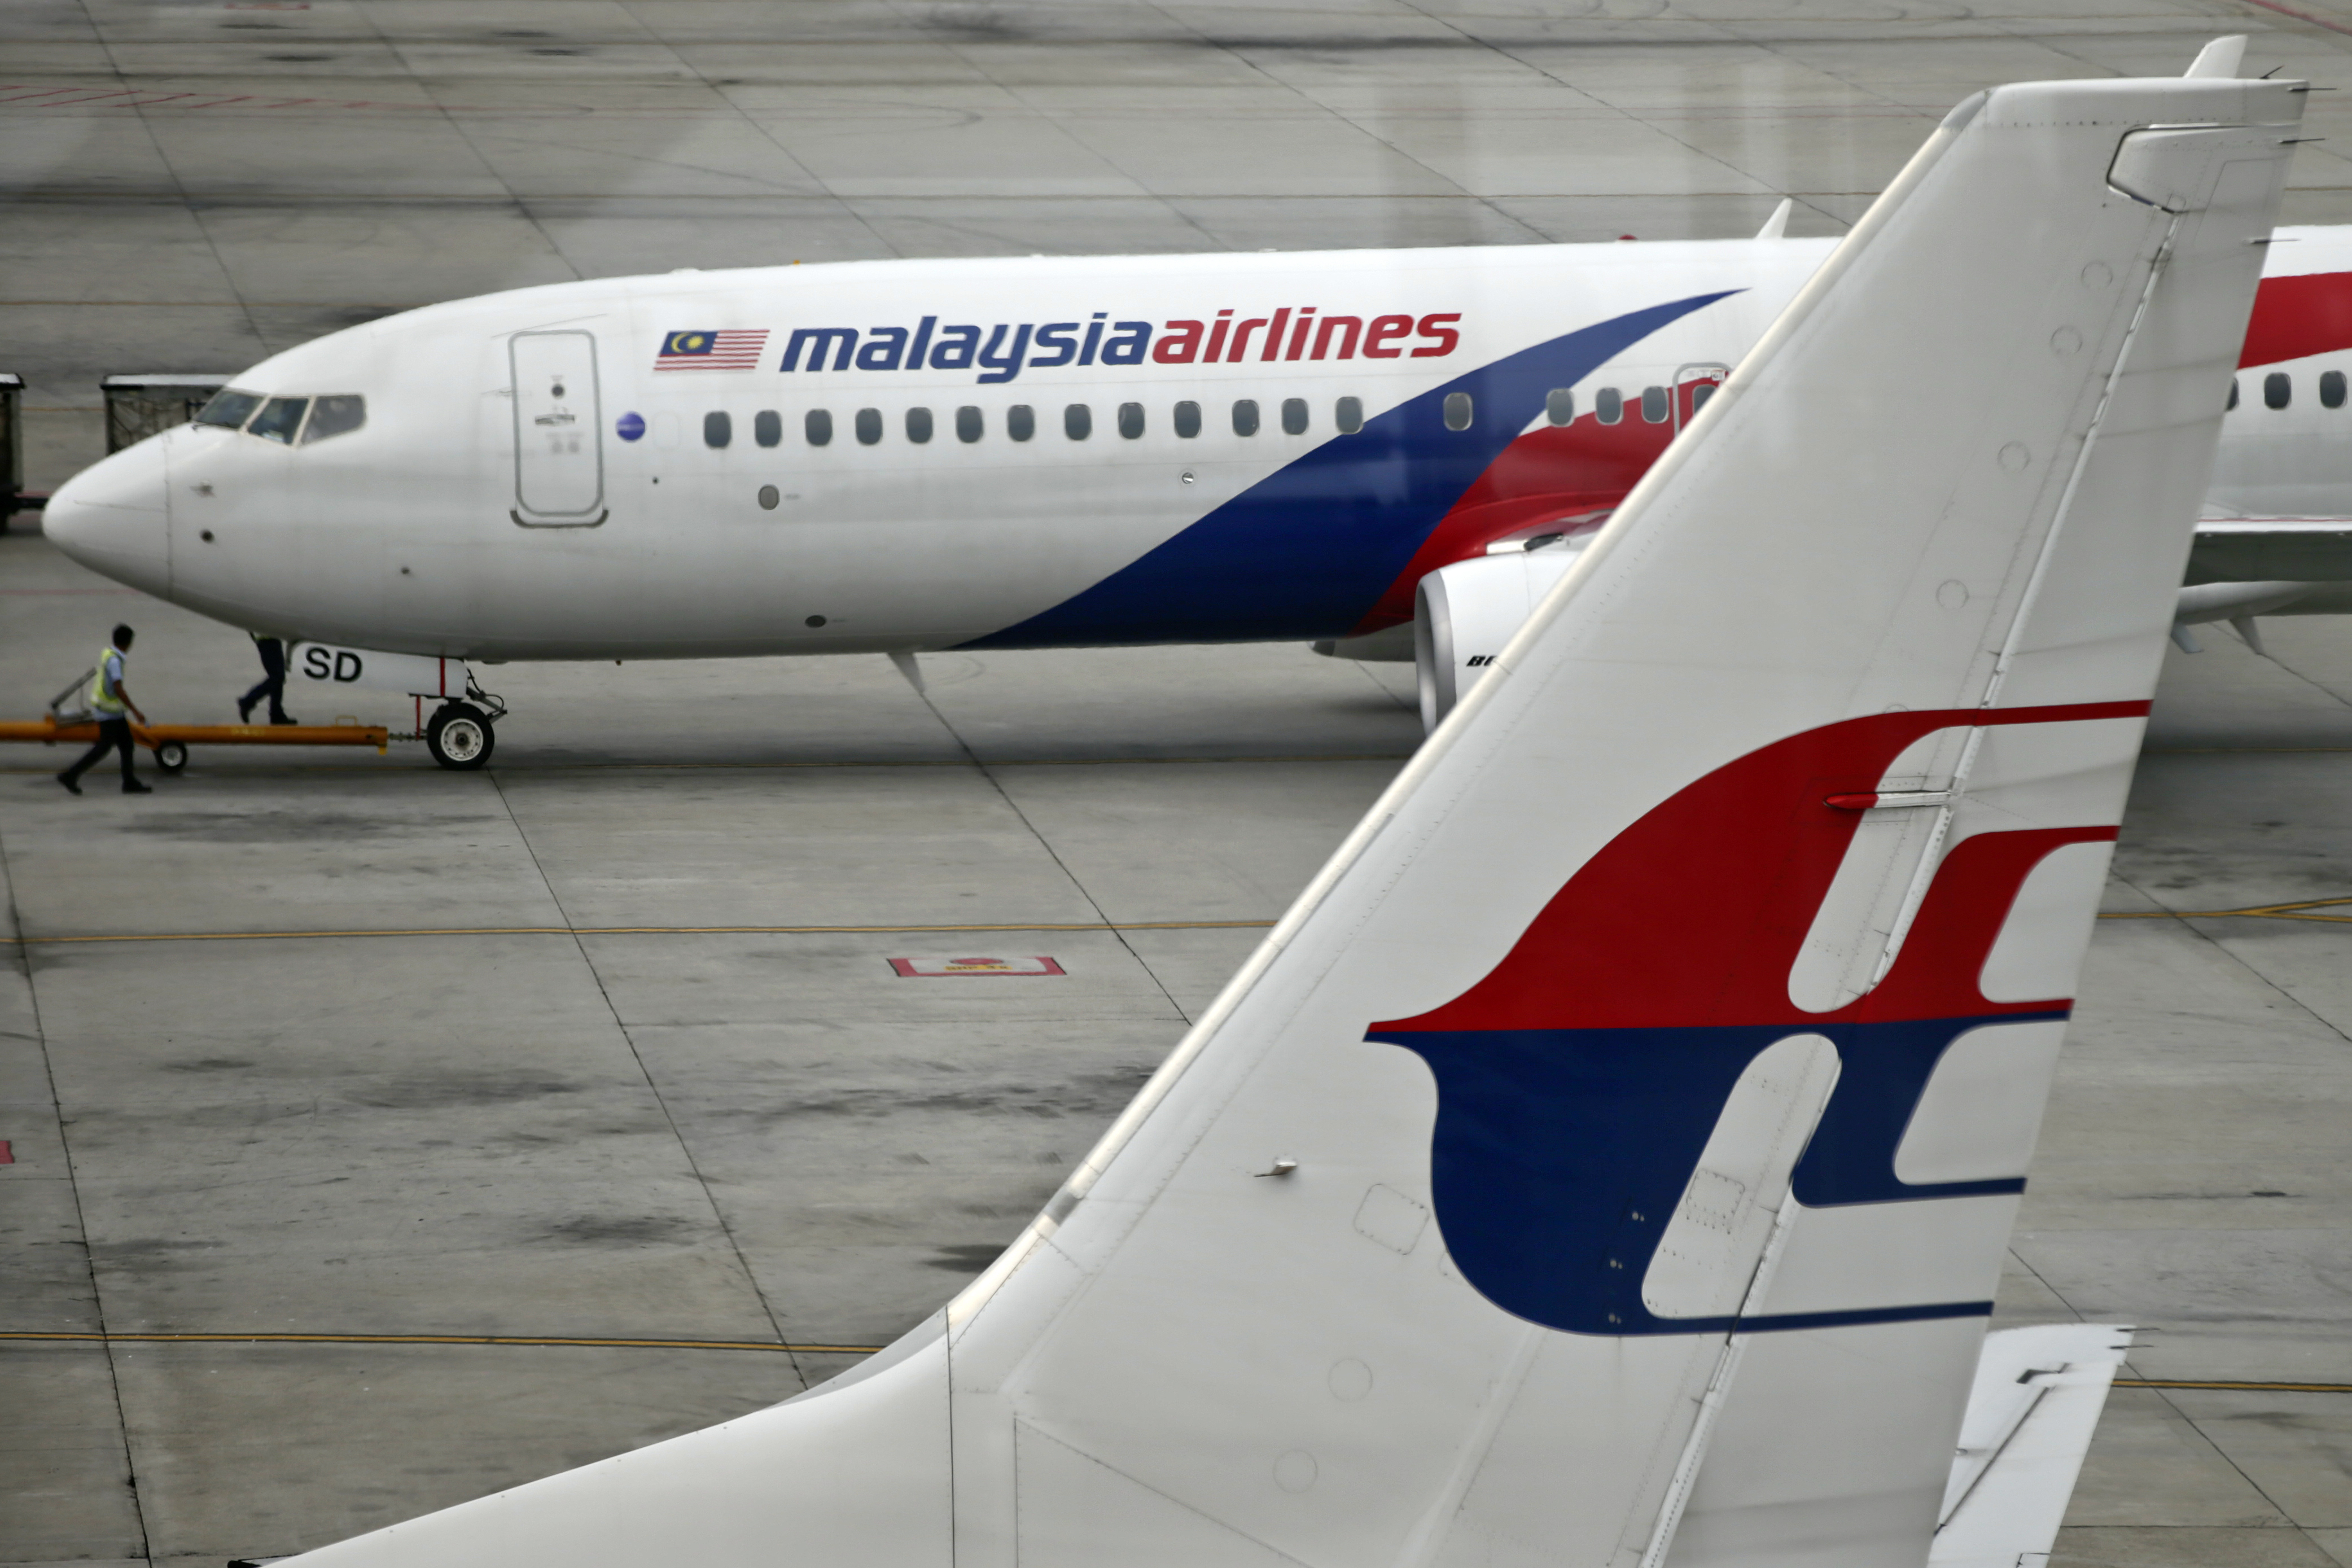 Mh370 widow sons sue malaysia airlines in australia publicscrutiny Gallery